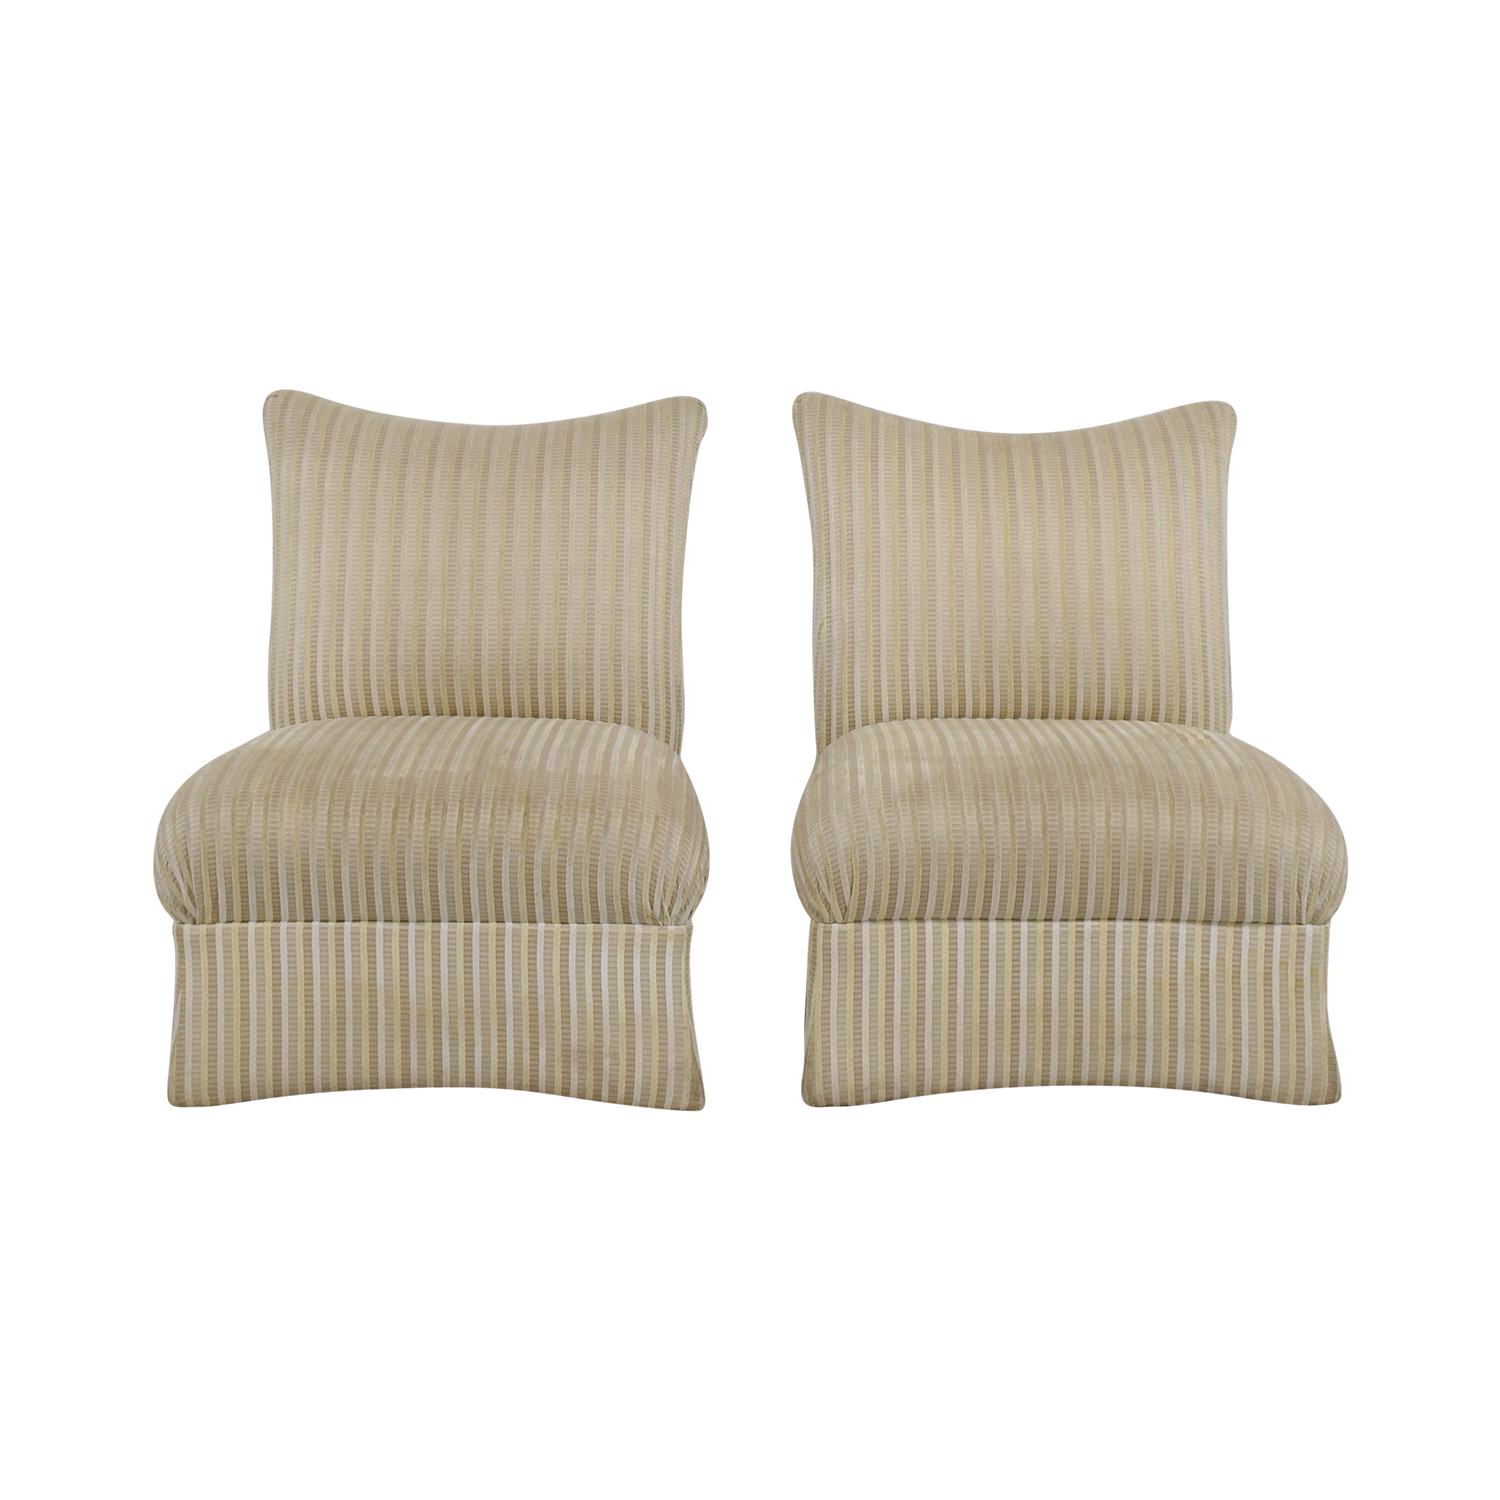 Ethan Allen Ethan Allen Striped Accent Chairs dimensions